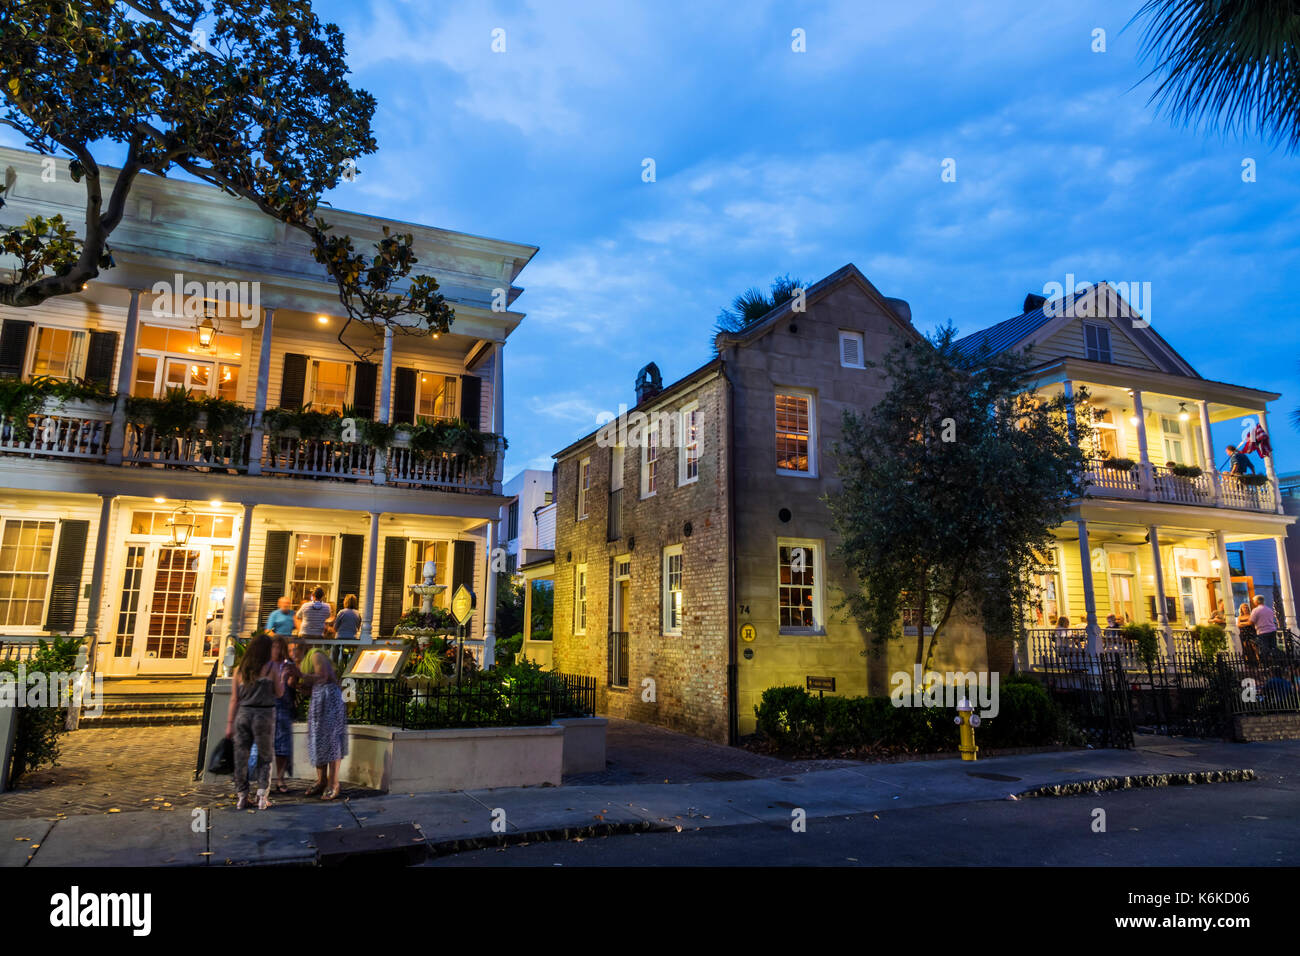 c8.alamy.com/compde/k6kd06/charleston-south-caroli...